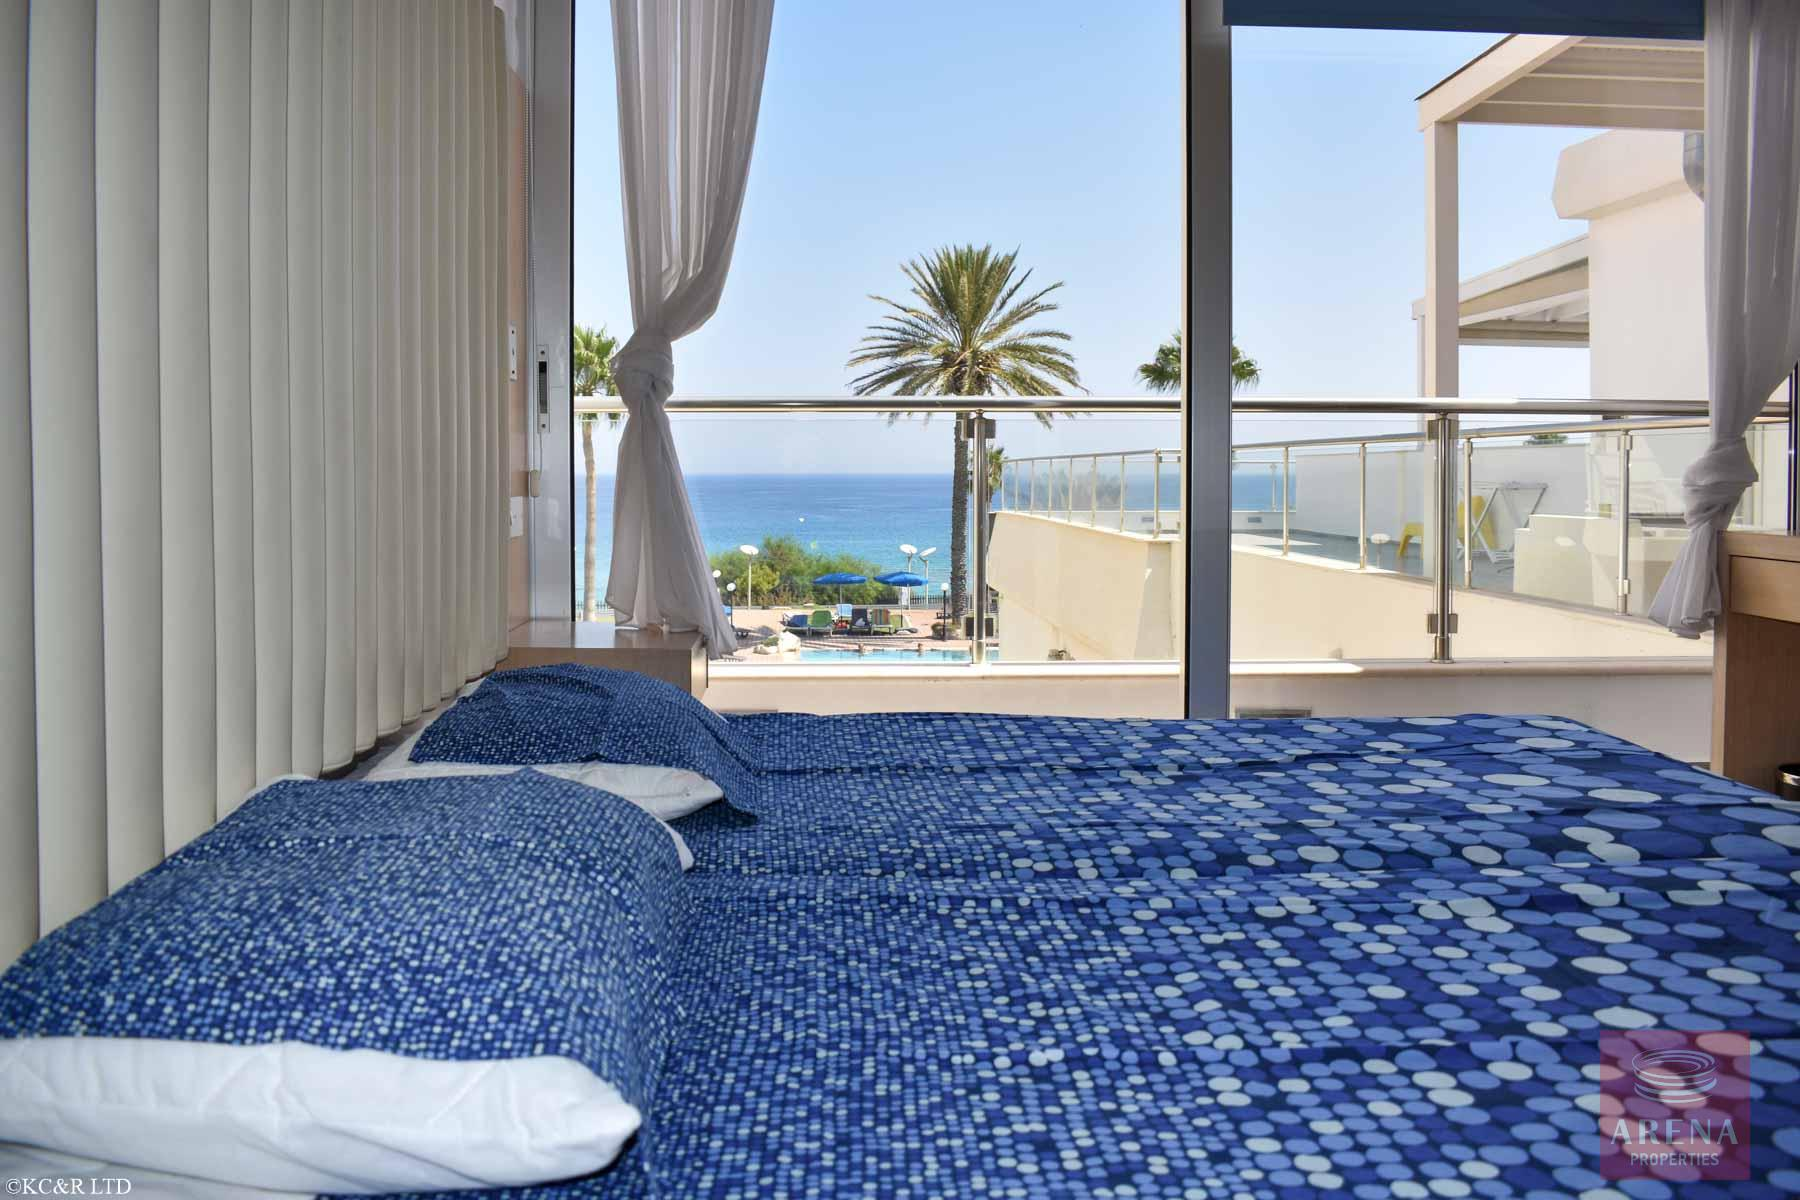 Seafront Apartment in Protaras - bedroom